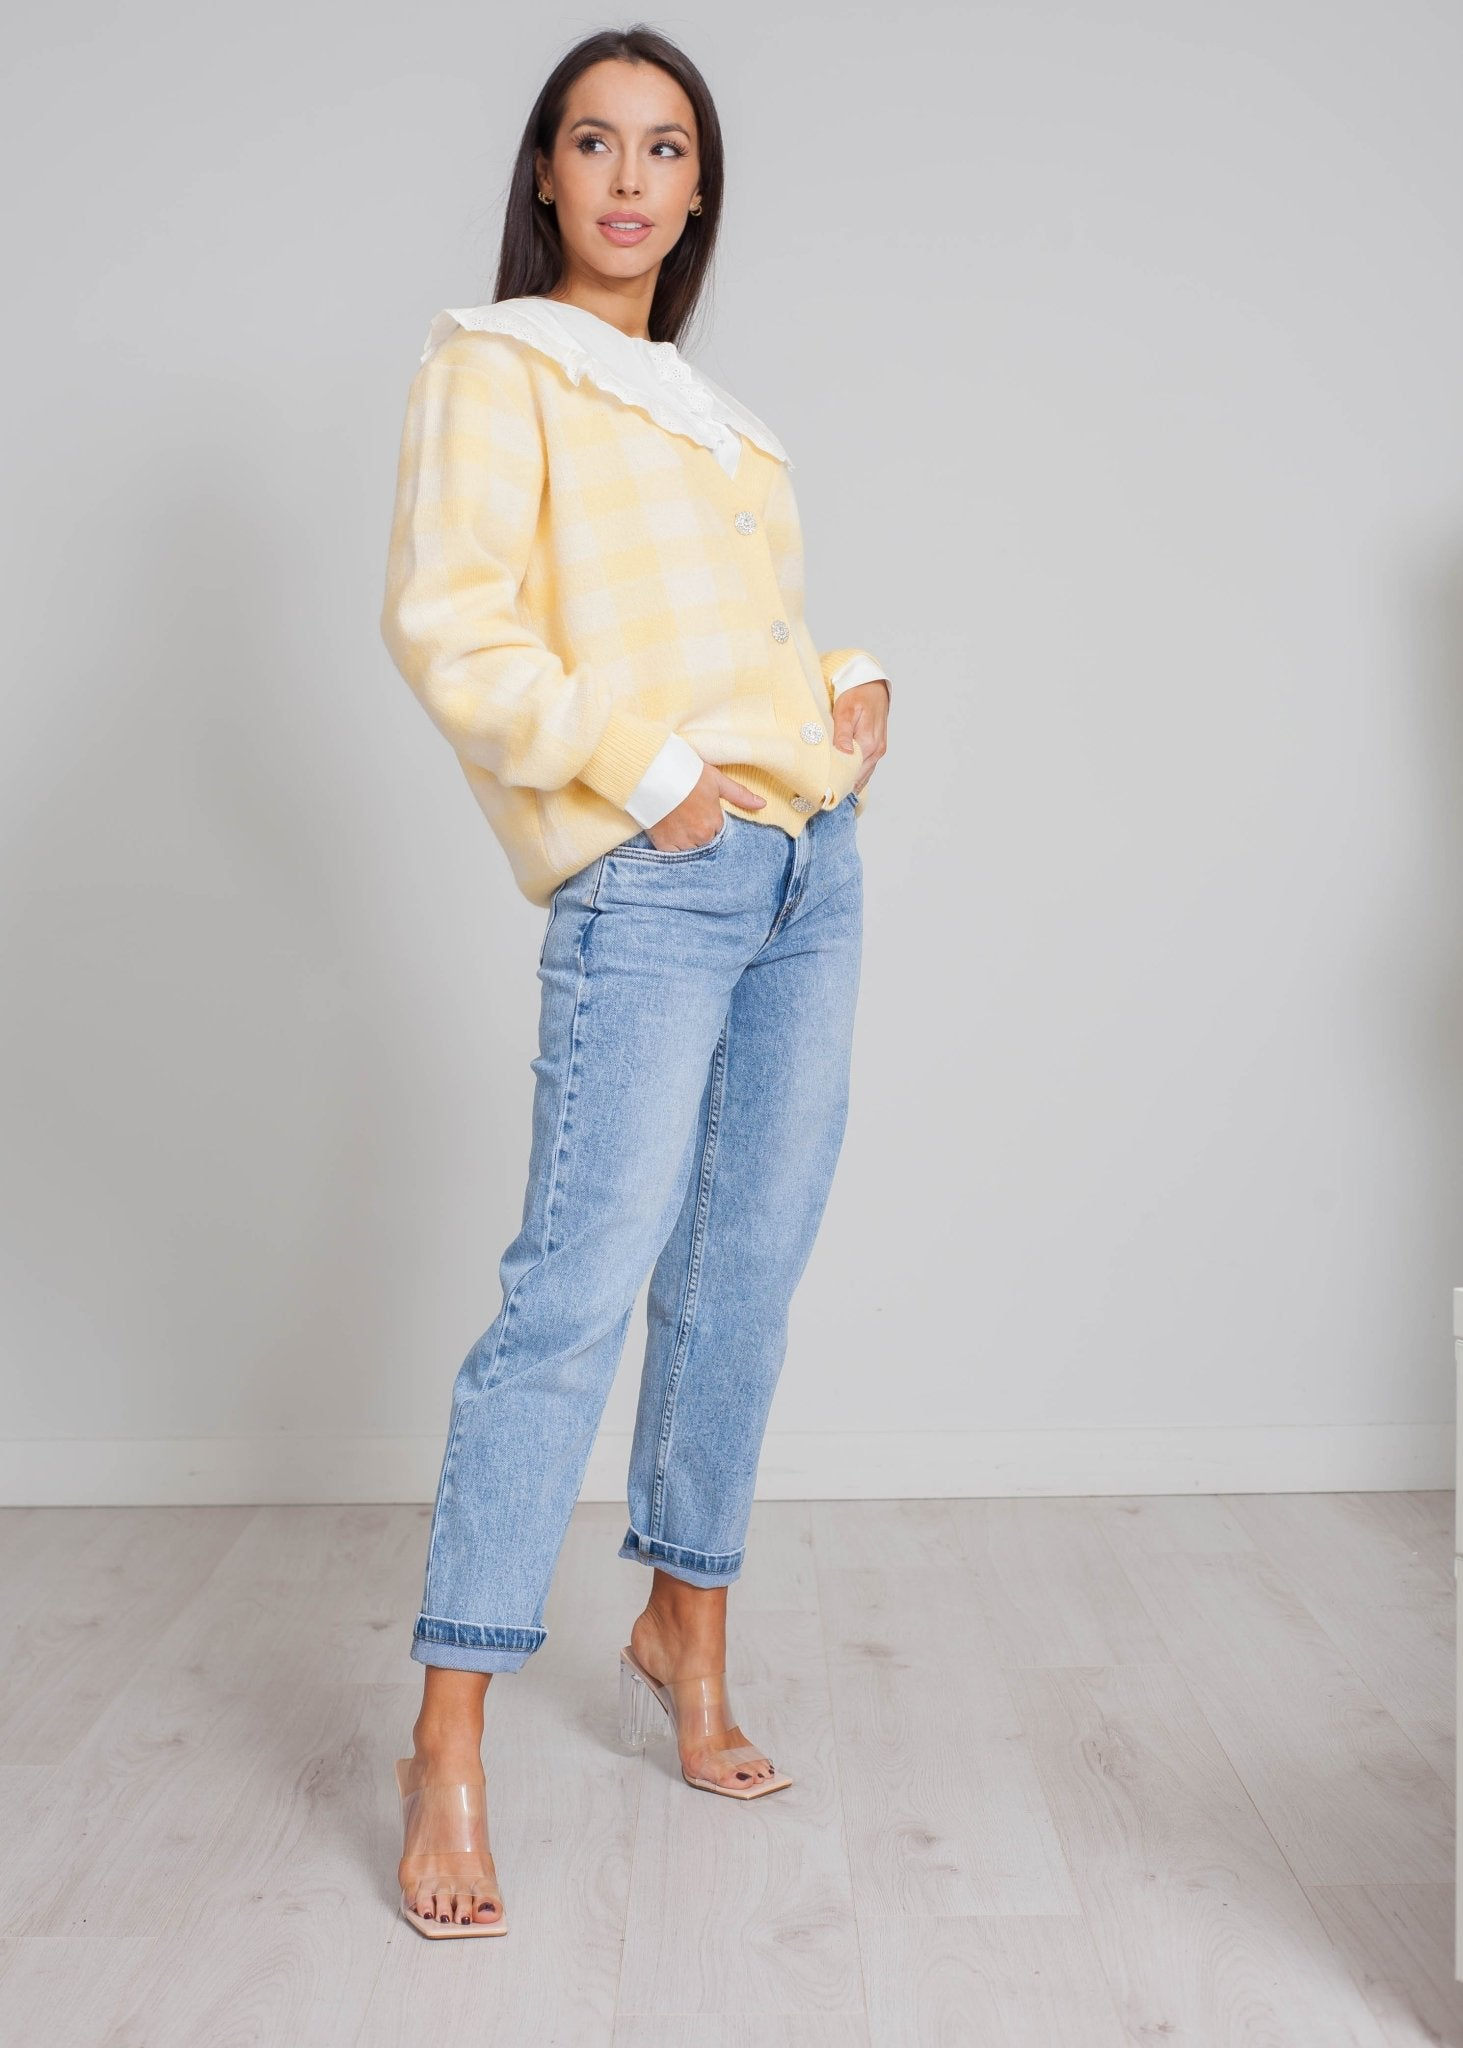 Elsa Check Cardigan In Lemon - The Walk in Wardrobe